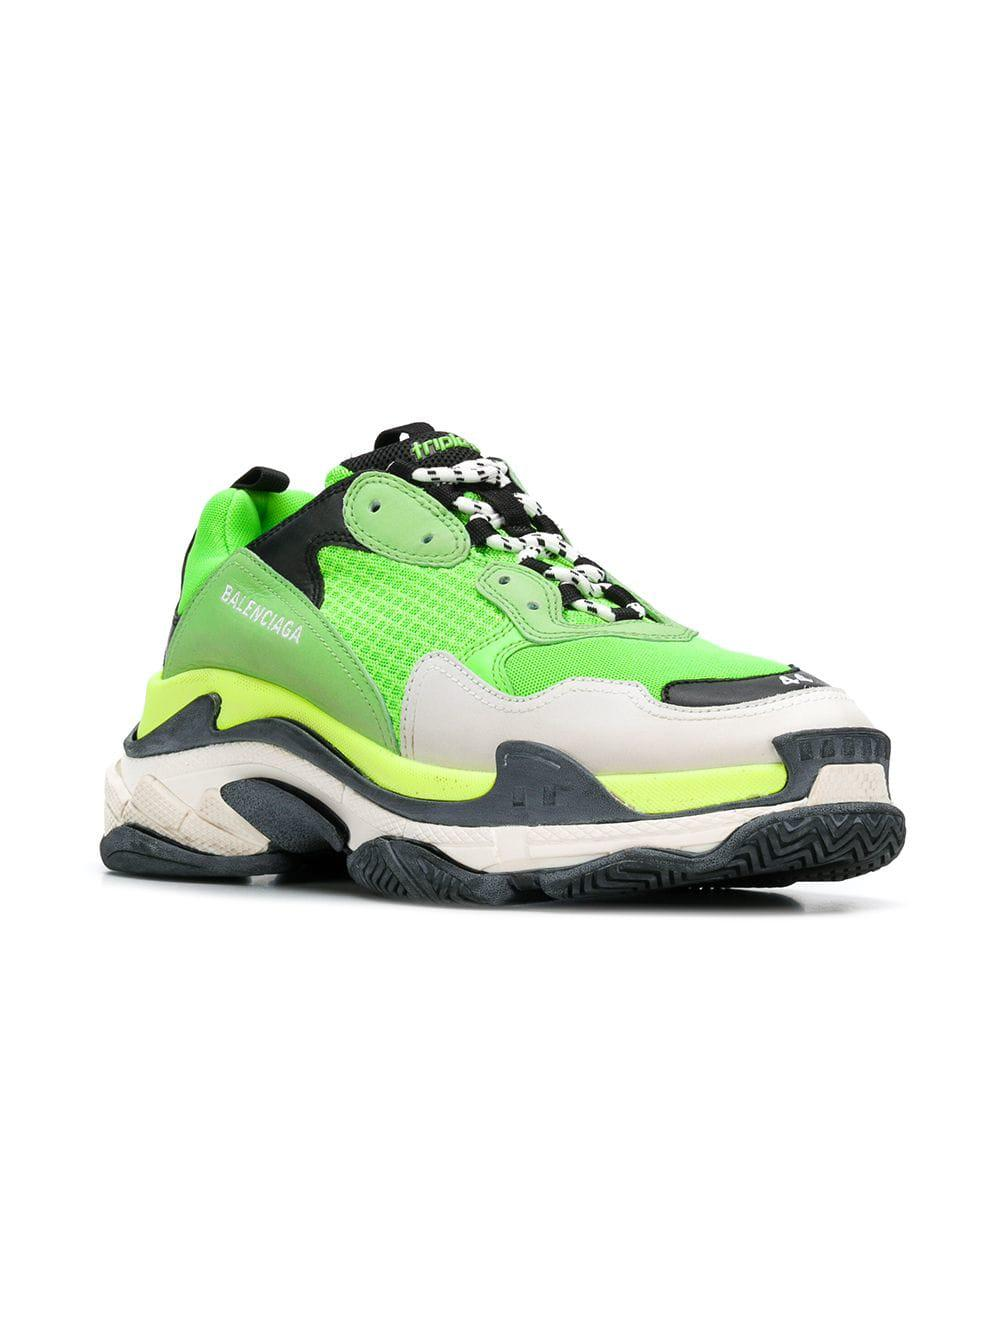 wholesale great prices great fit Calfskin Mesh Mens Triple S Trainers Sneakers 46 Vert Fluo Black